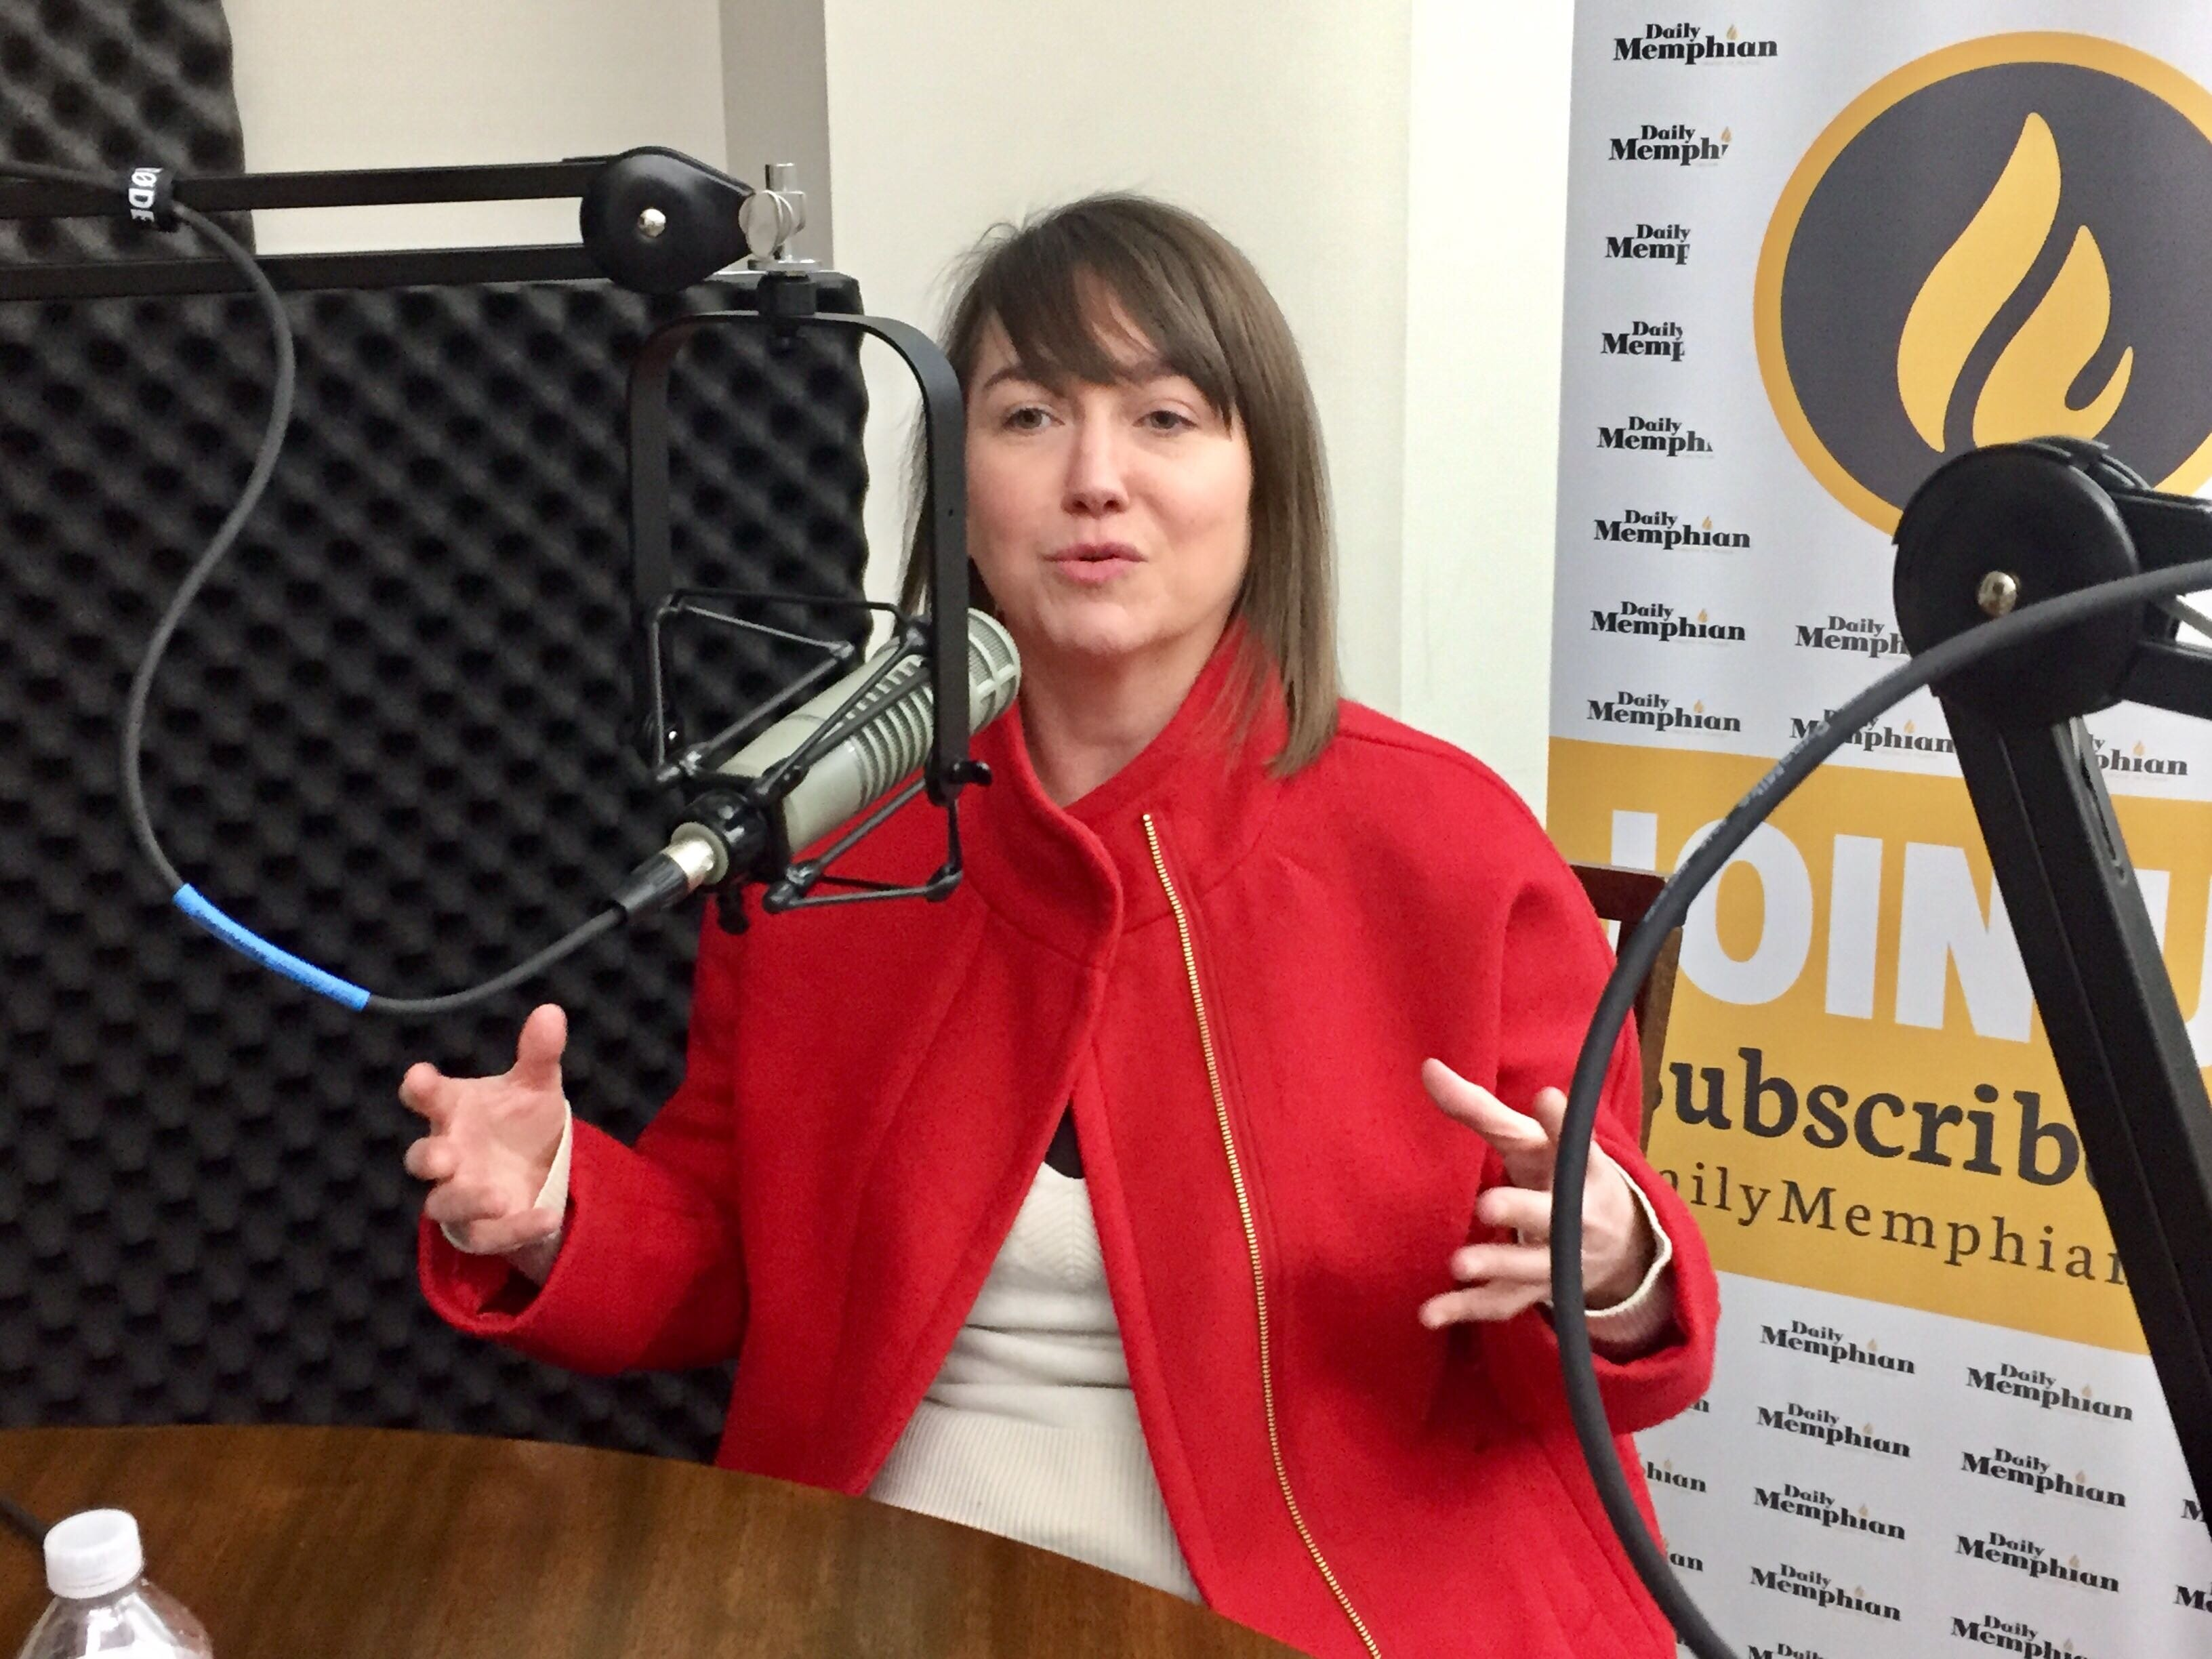 Anna Mullins with New Memphis discusses the upcoming TEDx Memphis event. It will be held on February 22 at the Concourse Theater. (Natalie Van Gundy)